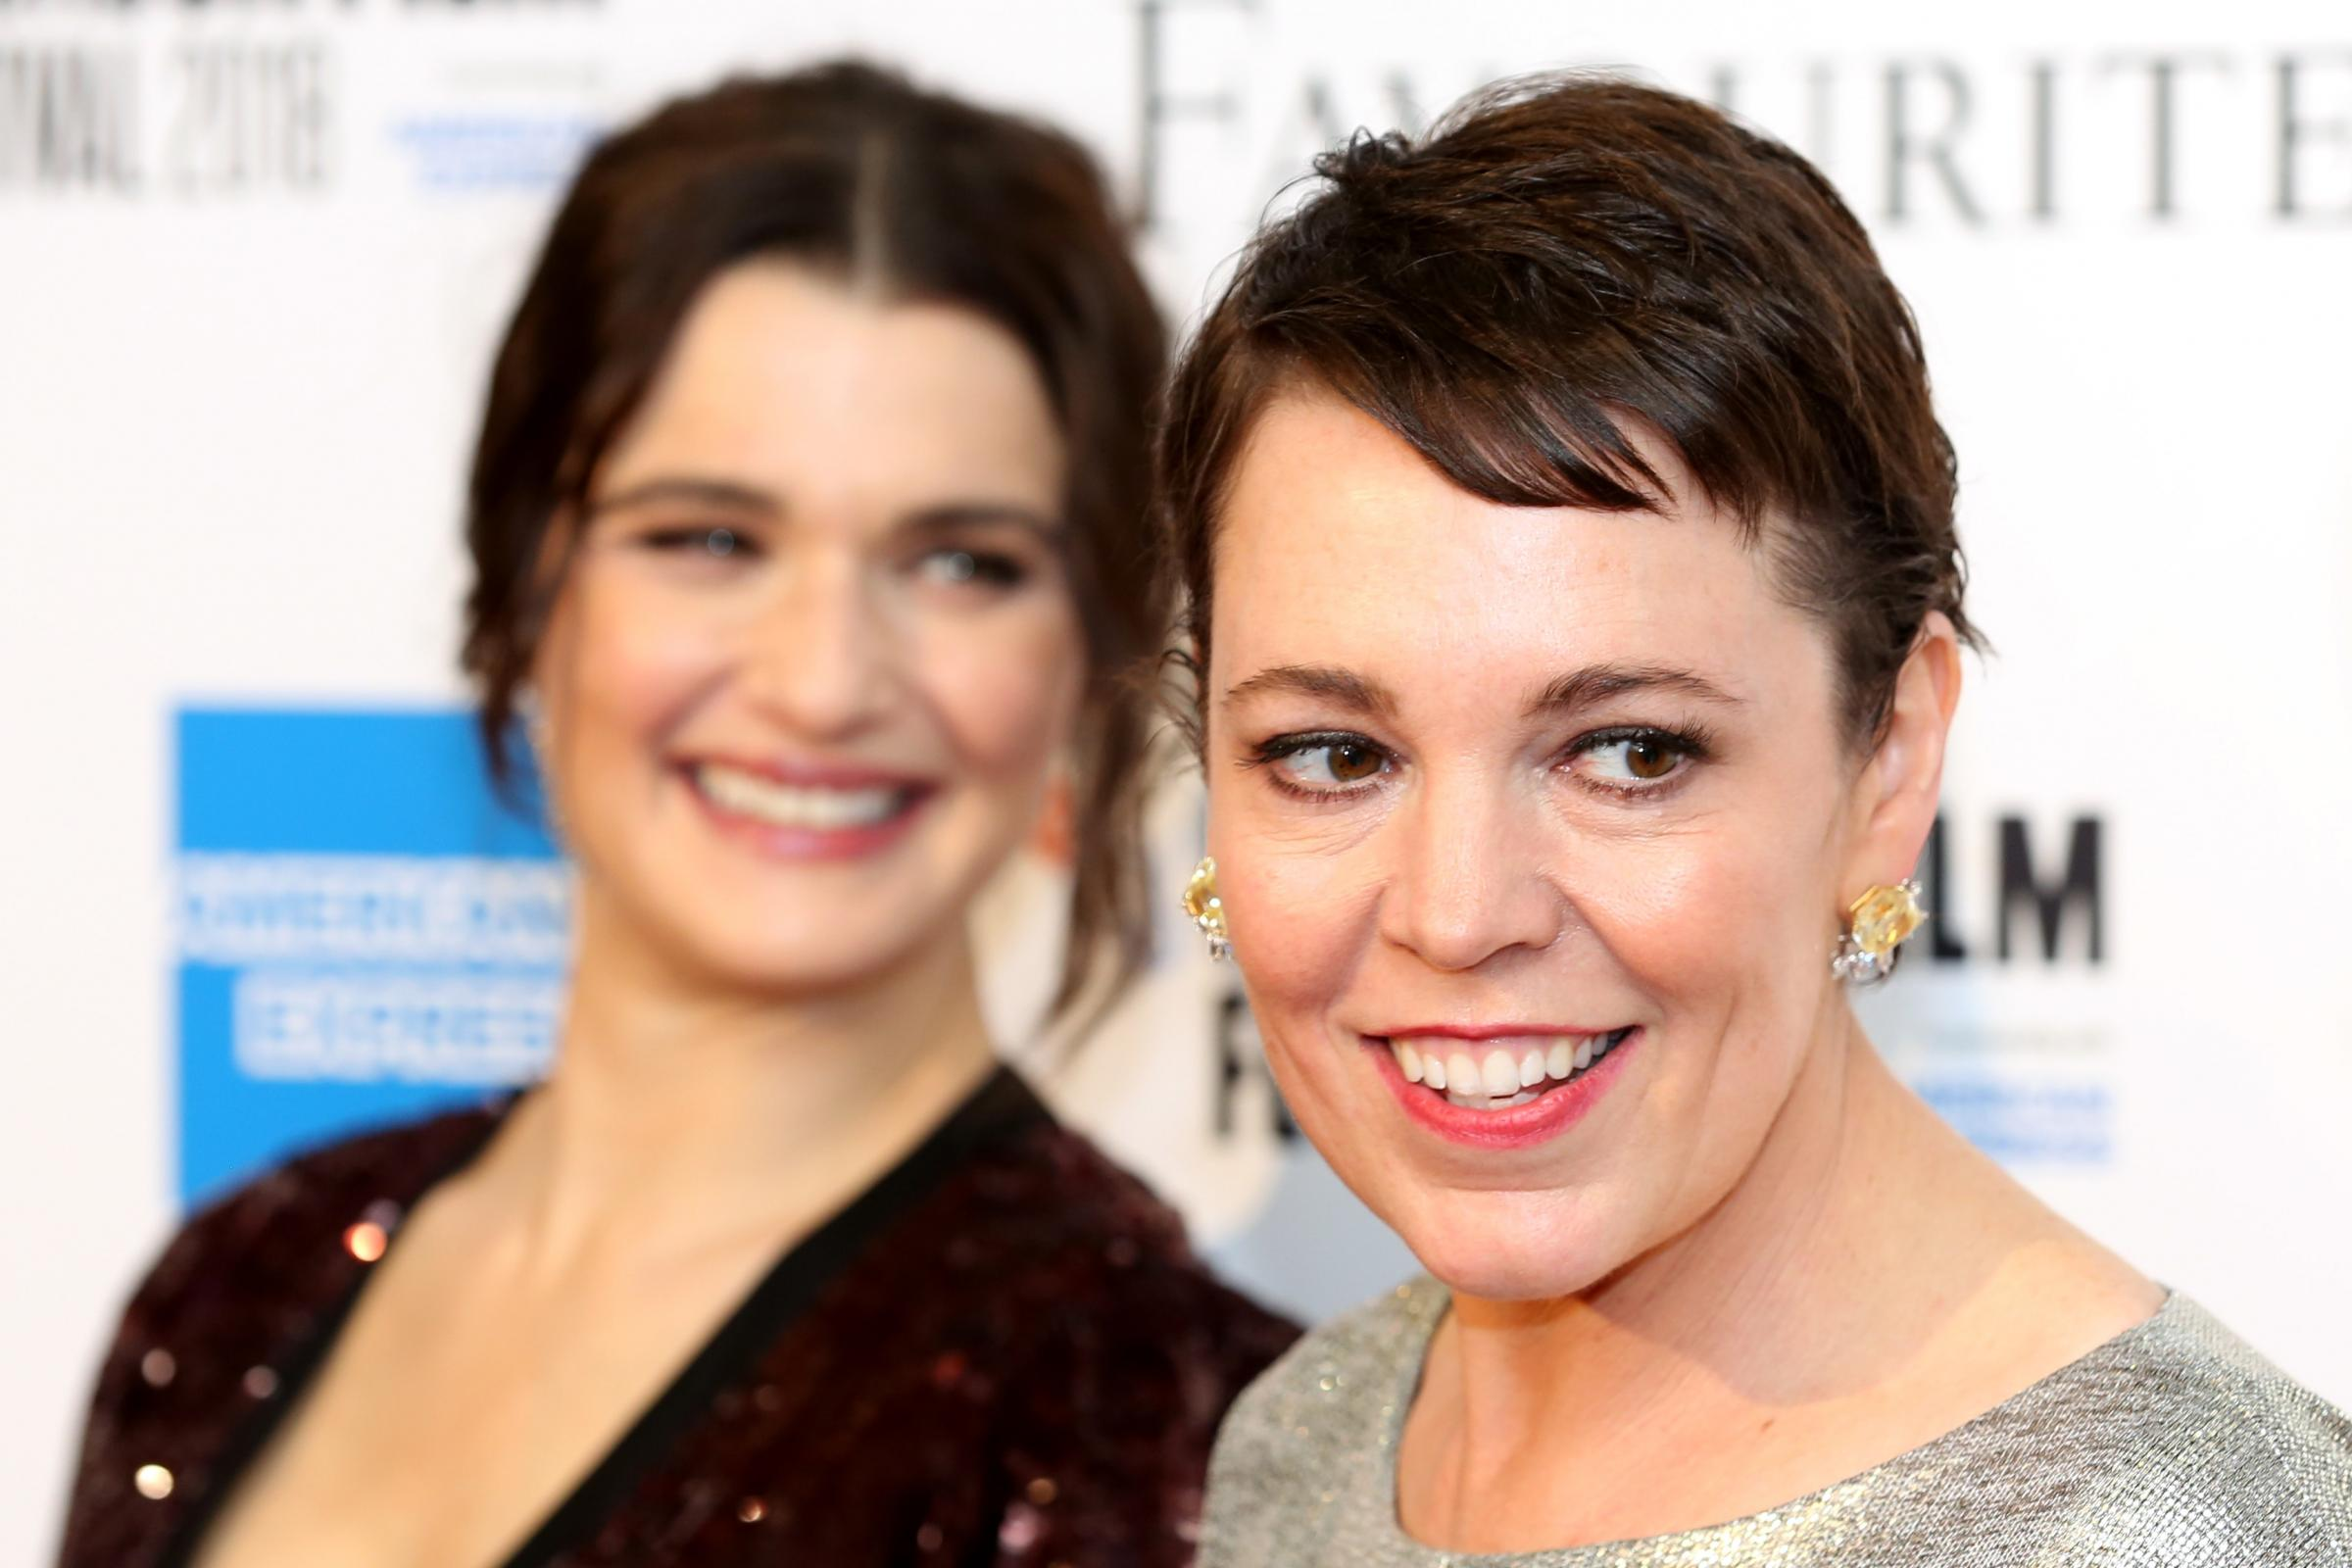 Rachel Weisz and Olivia Colman attending the UK premiere of The Favourite